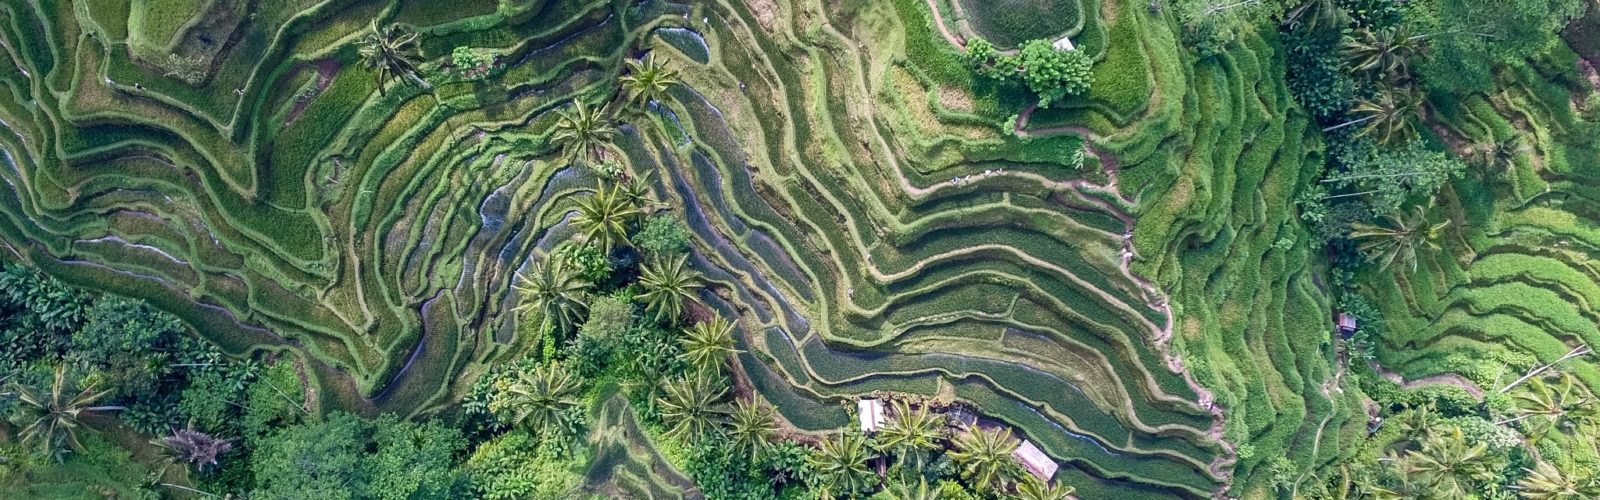 Landscape of rice paddies in Bali Indonesia